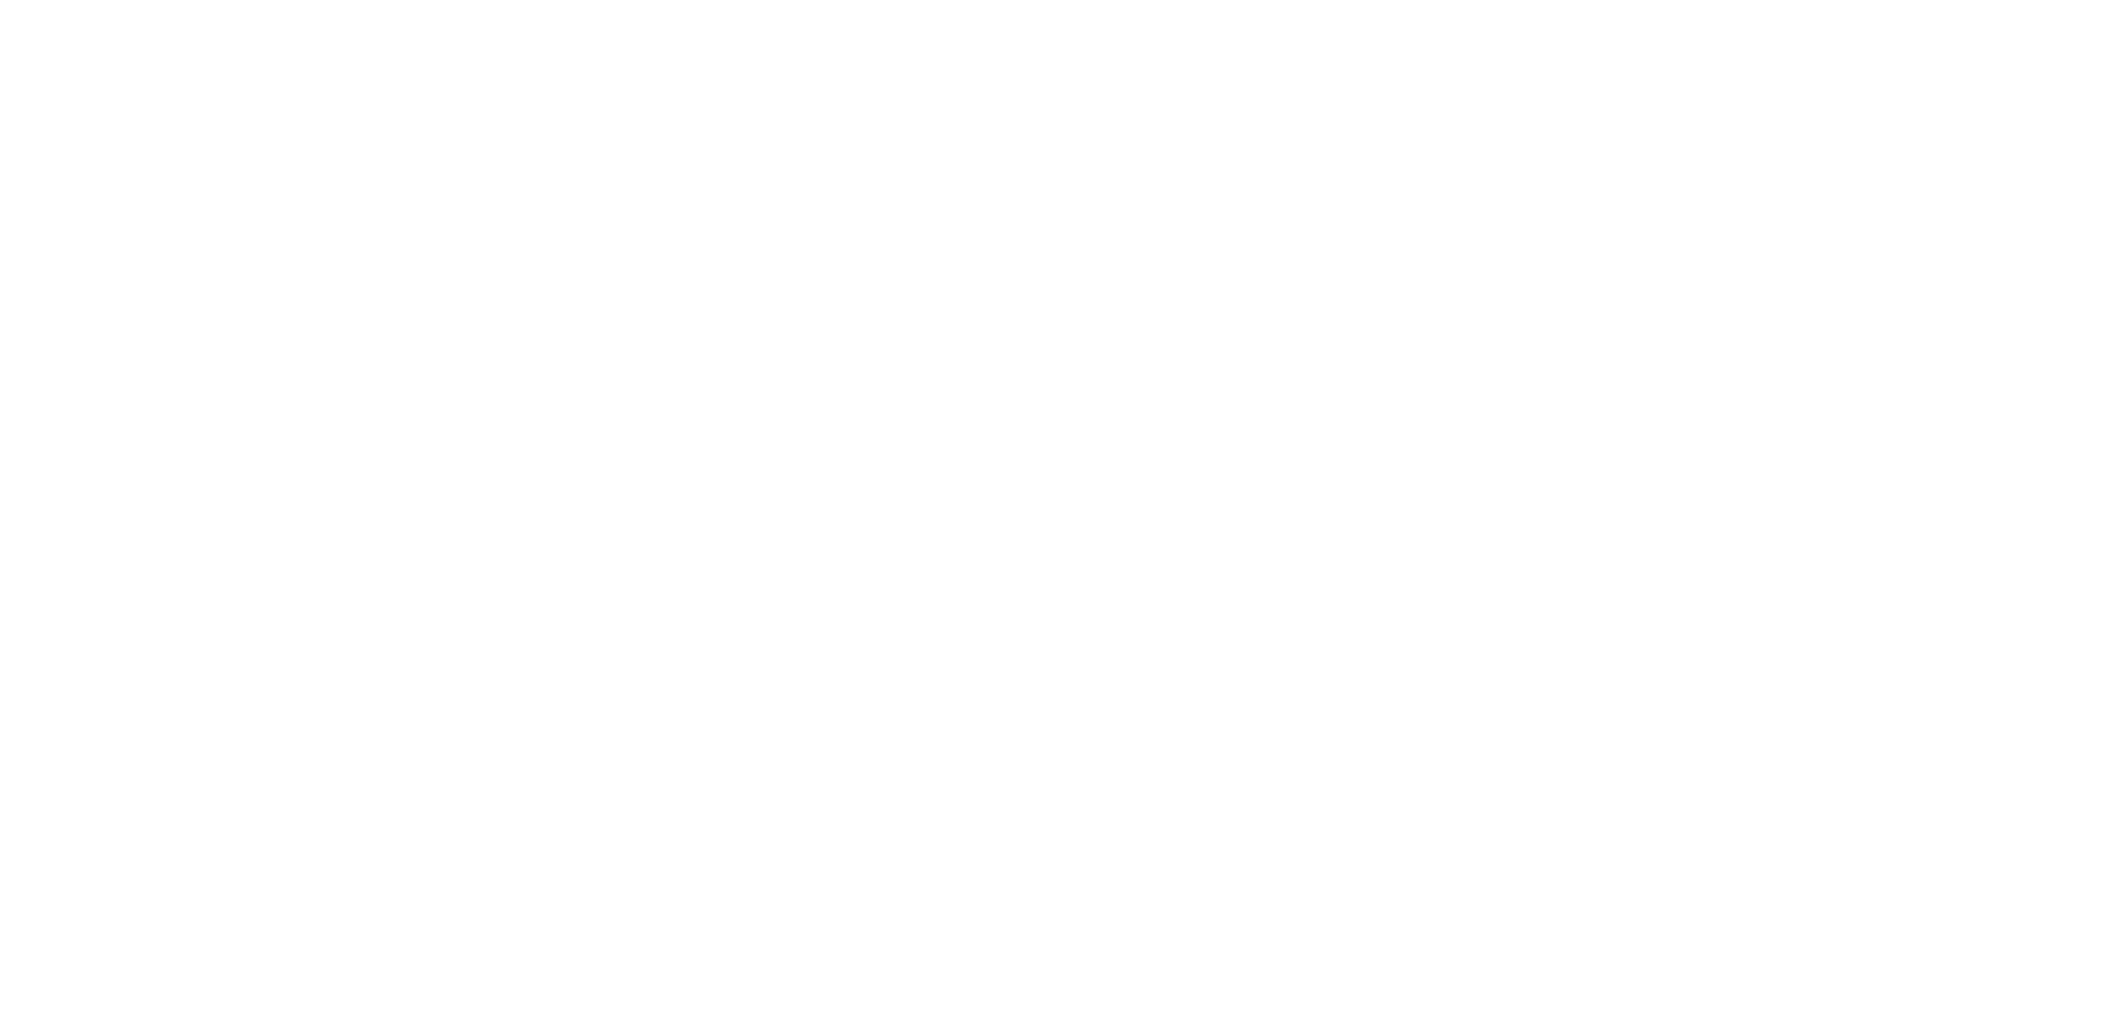 Surfrider Connecticut